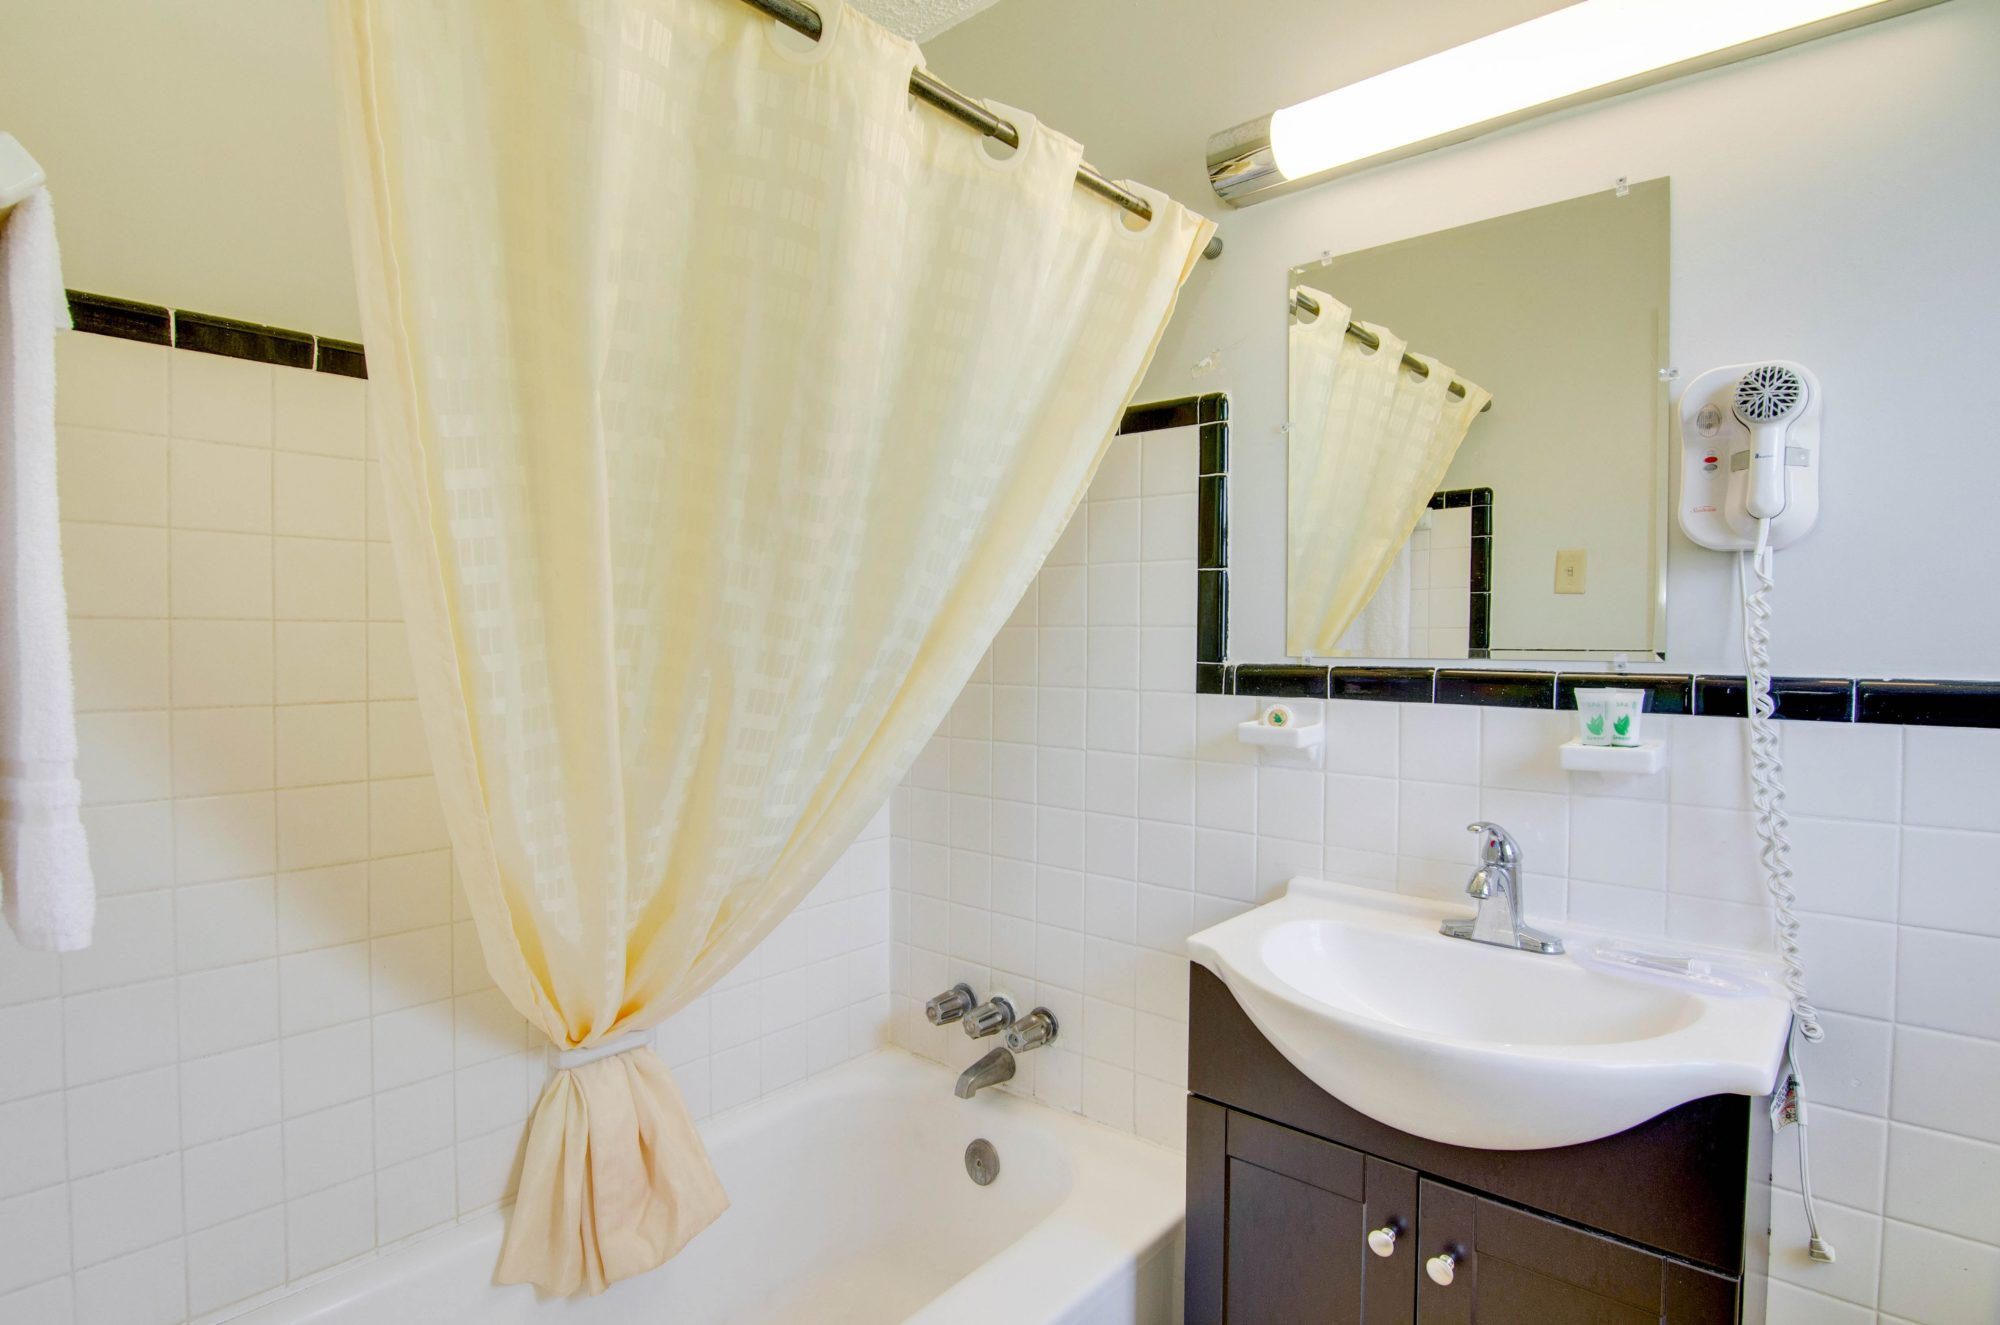 Shower tub with shower curtain, towel rail with towel, vanity unit, wall mounted hair dryer and mirror with overhead strip light